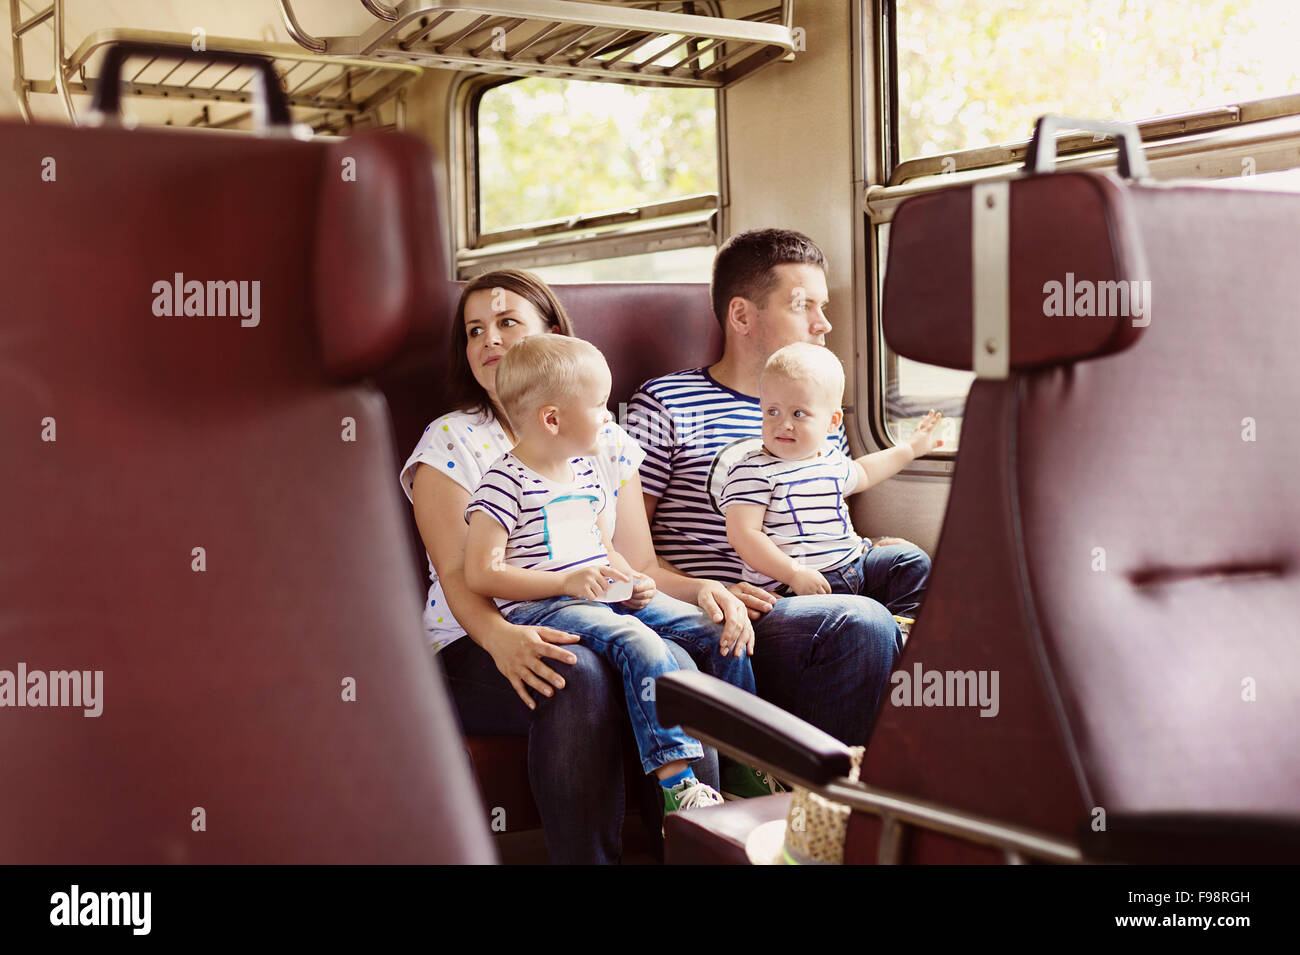 Family with two children travel in retro train. - Stock Image